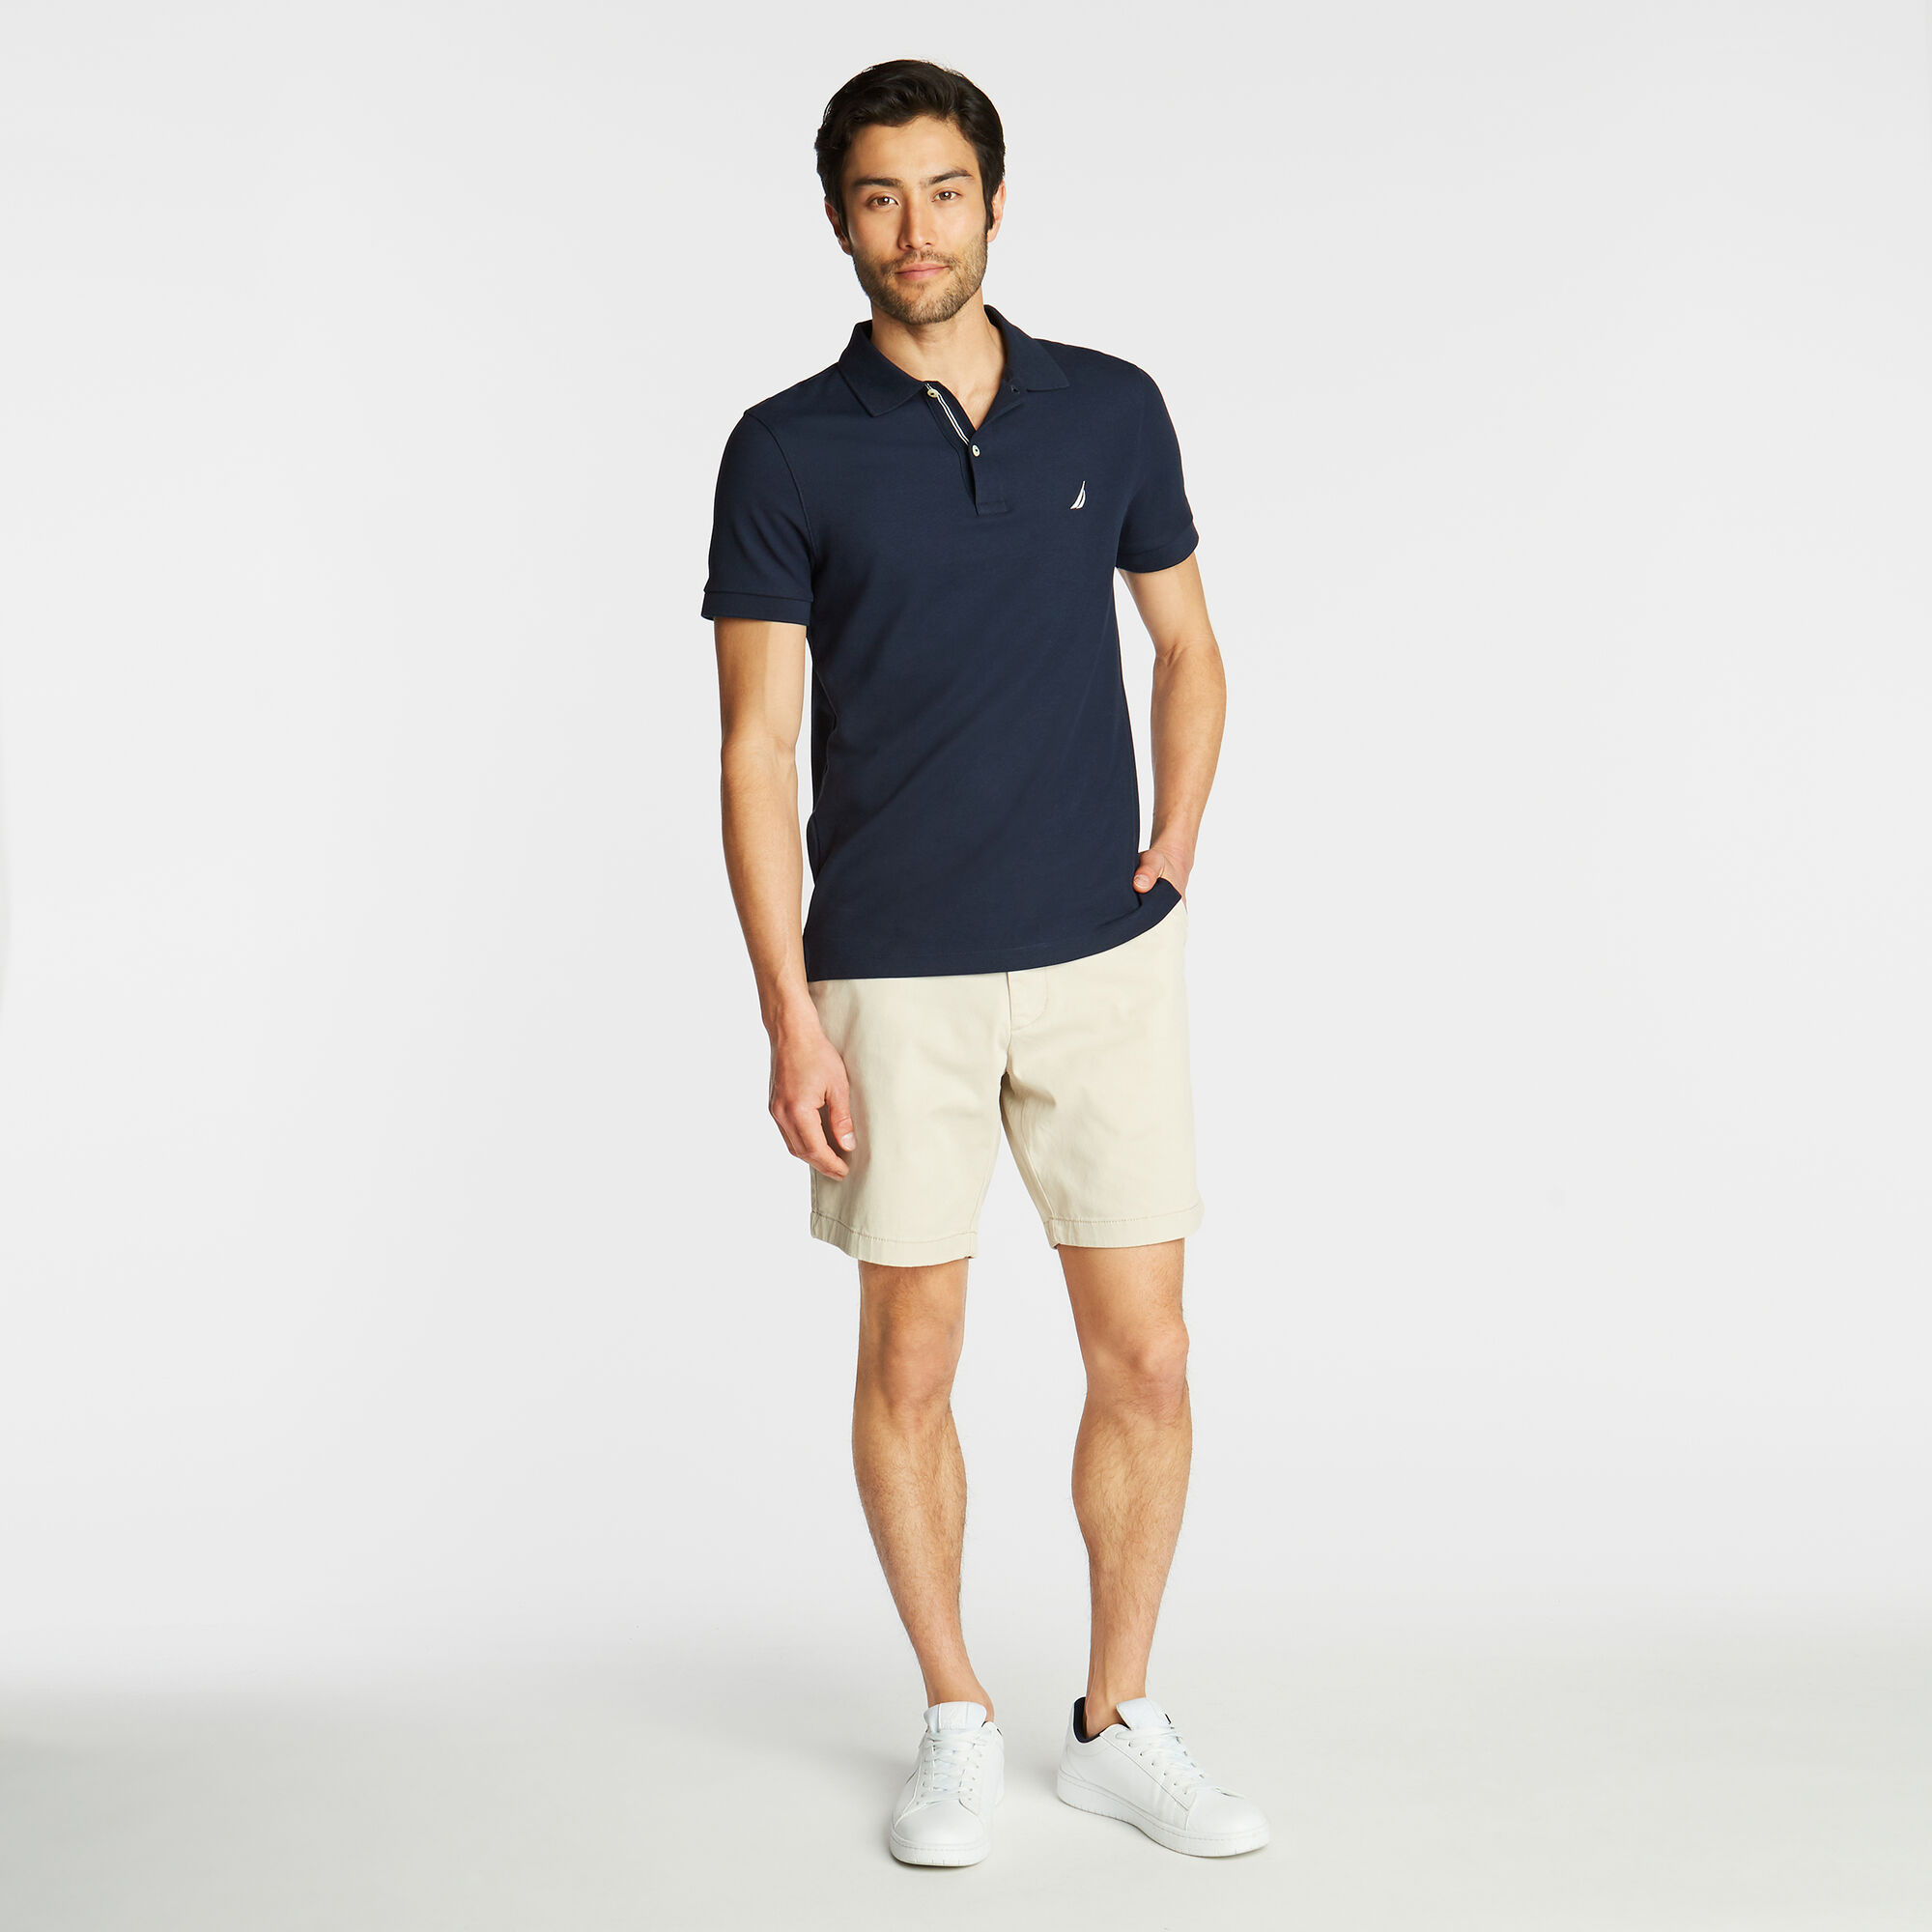 Nautica-Mens-8-5-034-Classic-Fit-Deck-Short-With-Stretch thumbnail 57